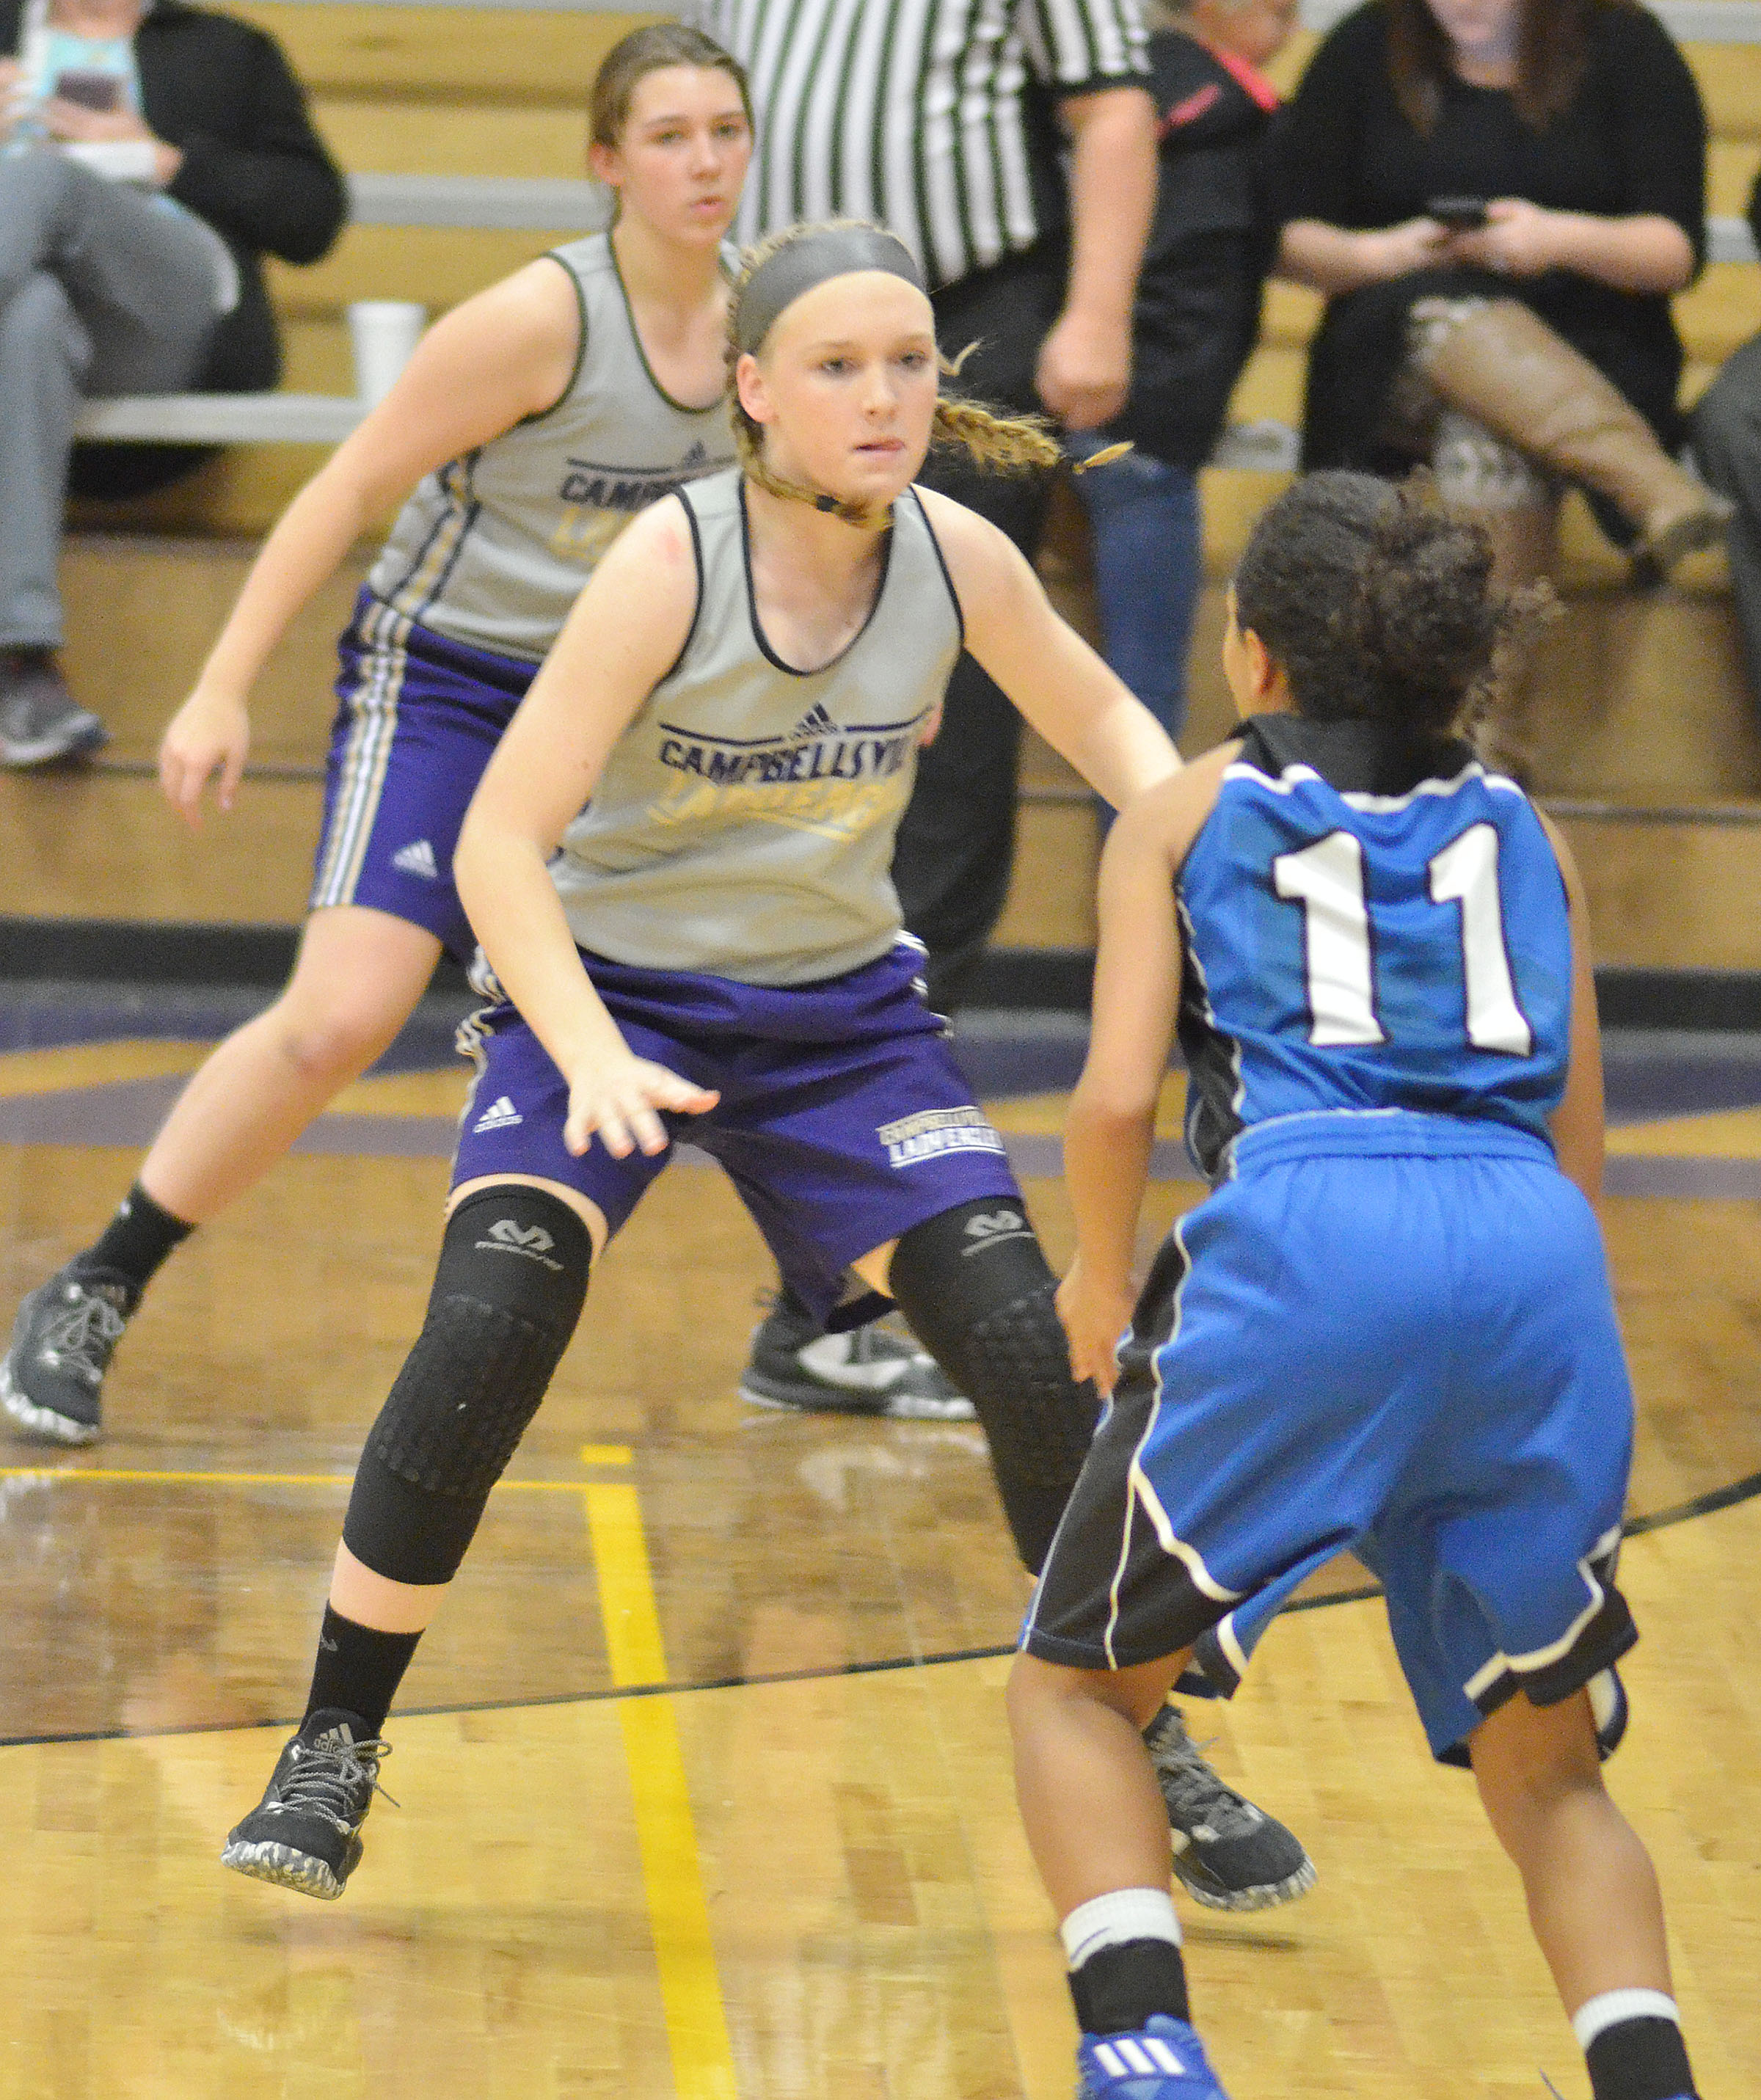 Campbellsville Middle School eighth-grader Catlyn Clausen plays defense.